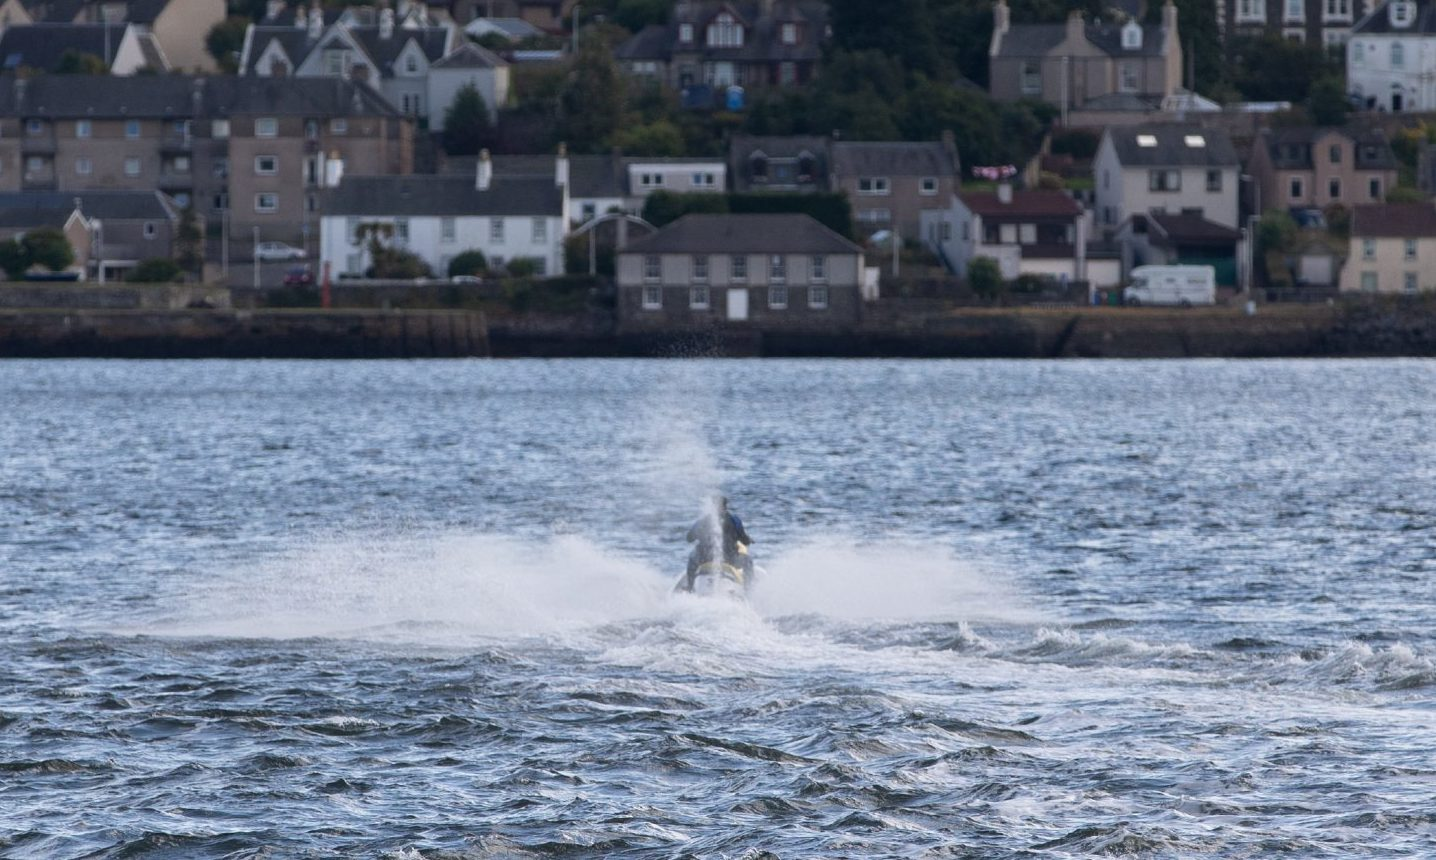 A jet-skier heading out from Broughty Ferry. There are complaints that some of the enthusiasts are ignoring rules around where they are allowed to operate their crafts.